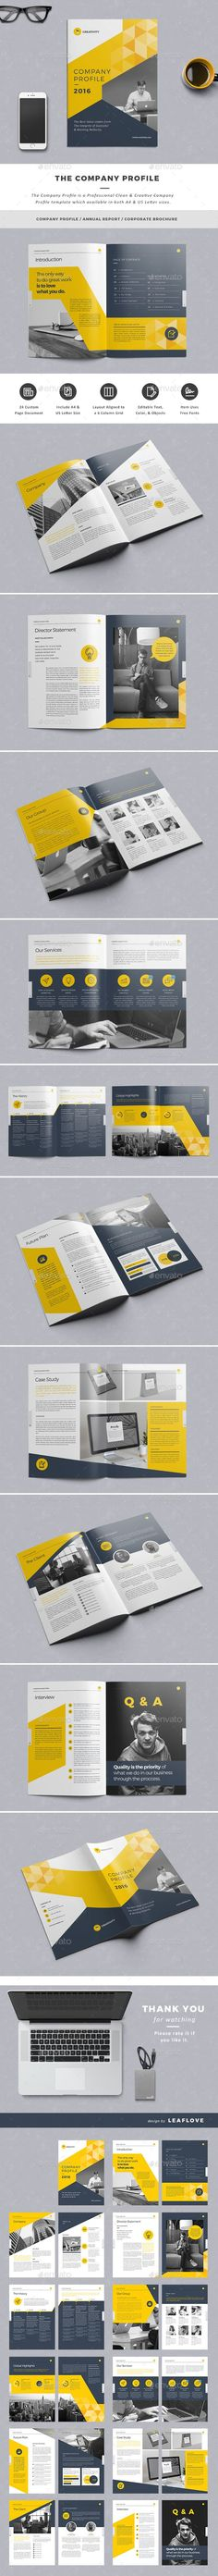 Neutral colors with a pop of color are a common color scheme for brochures and work really well.